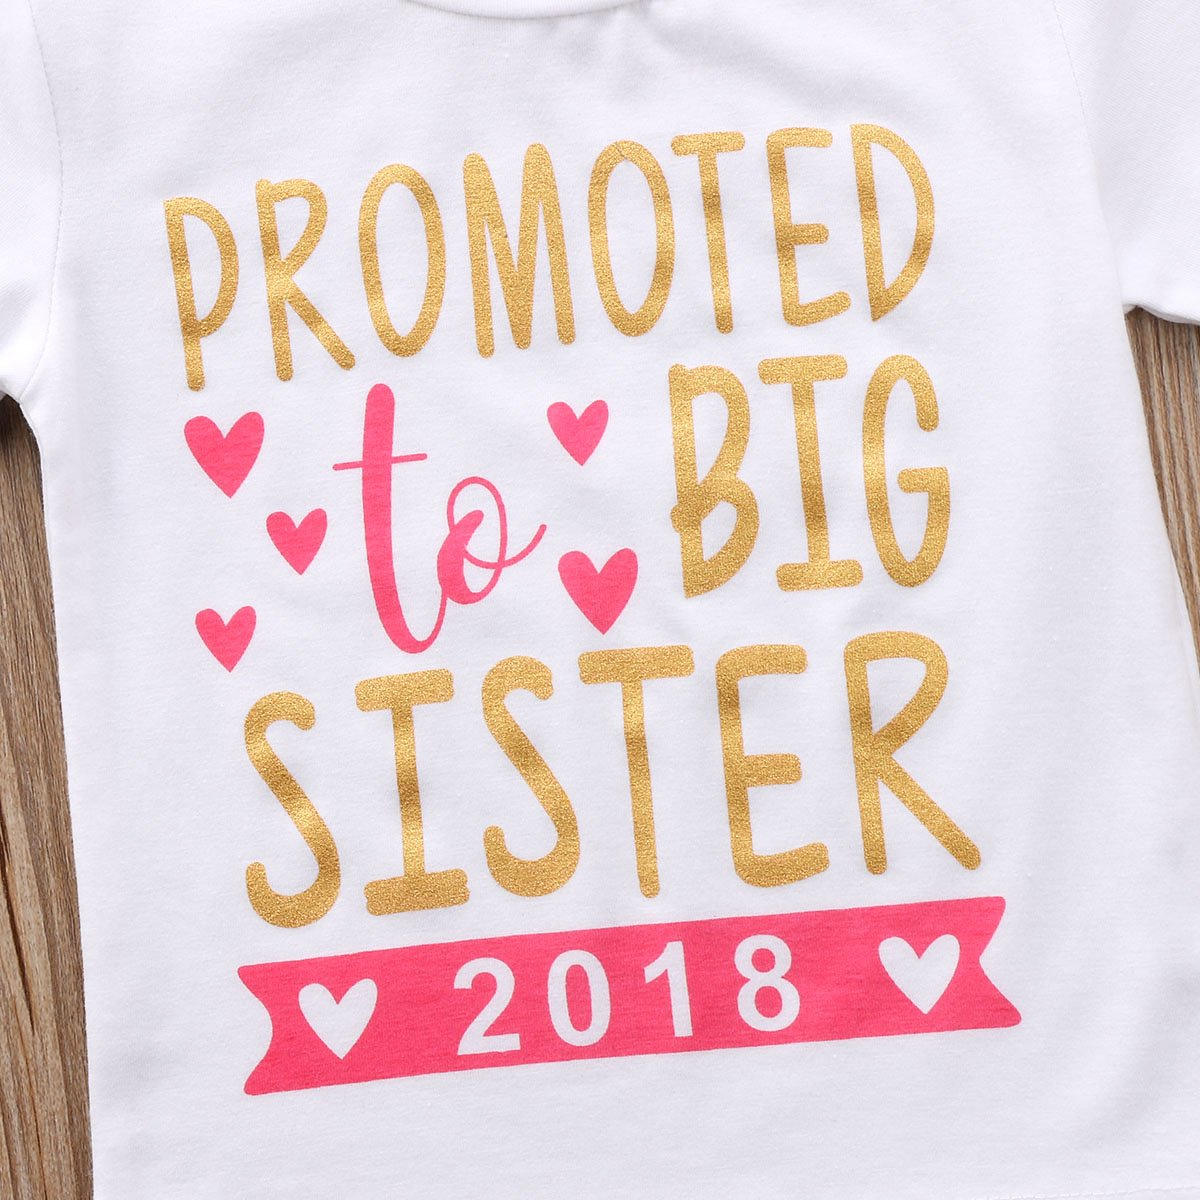 Gaono 2019 Baby Girl Clothes Outfit Big Sister Letter Print T-Shirt Top Blouse Shirts